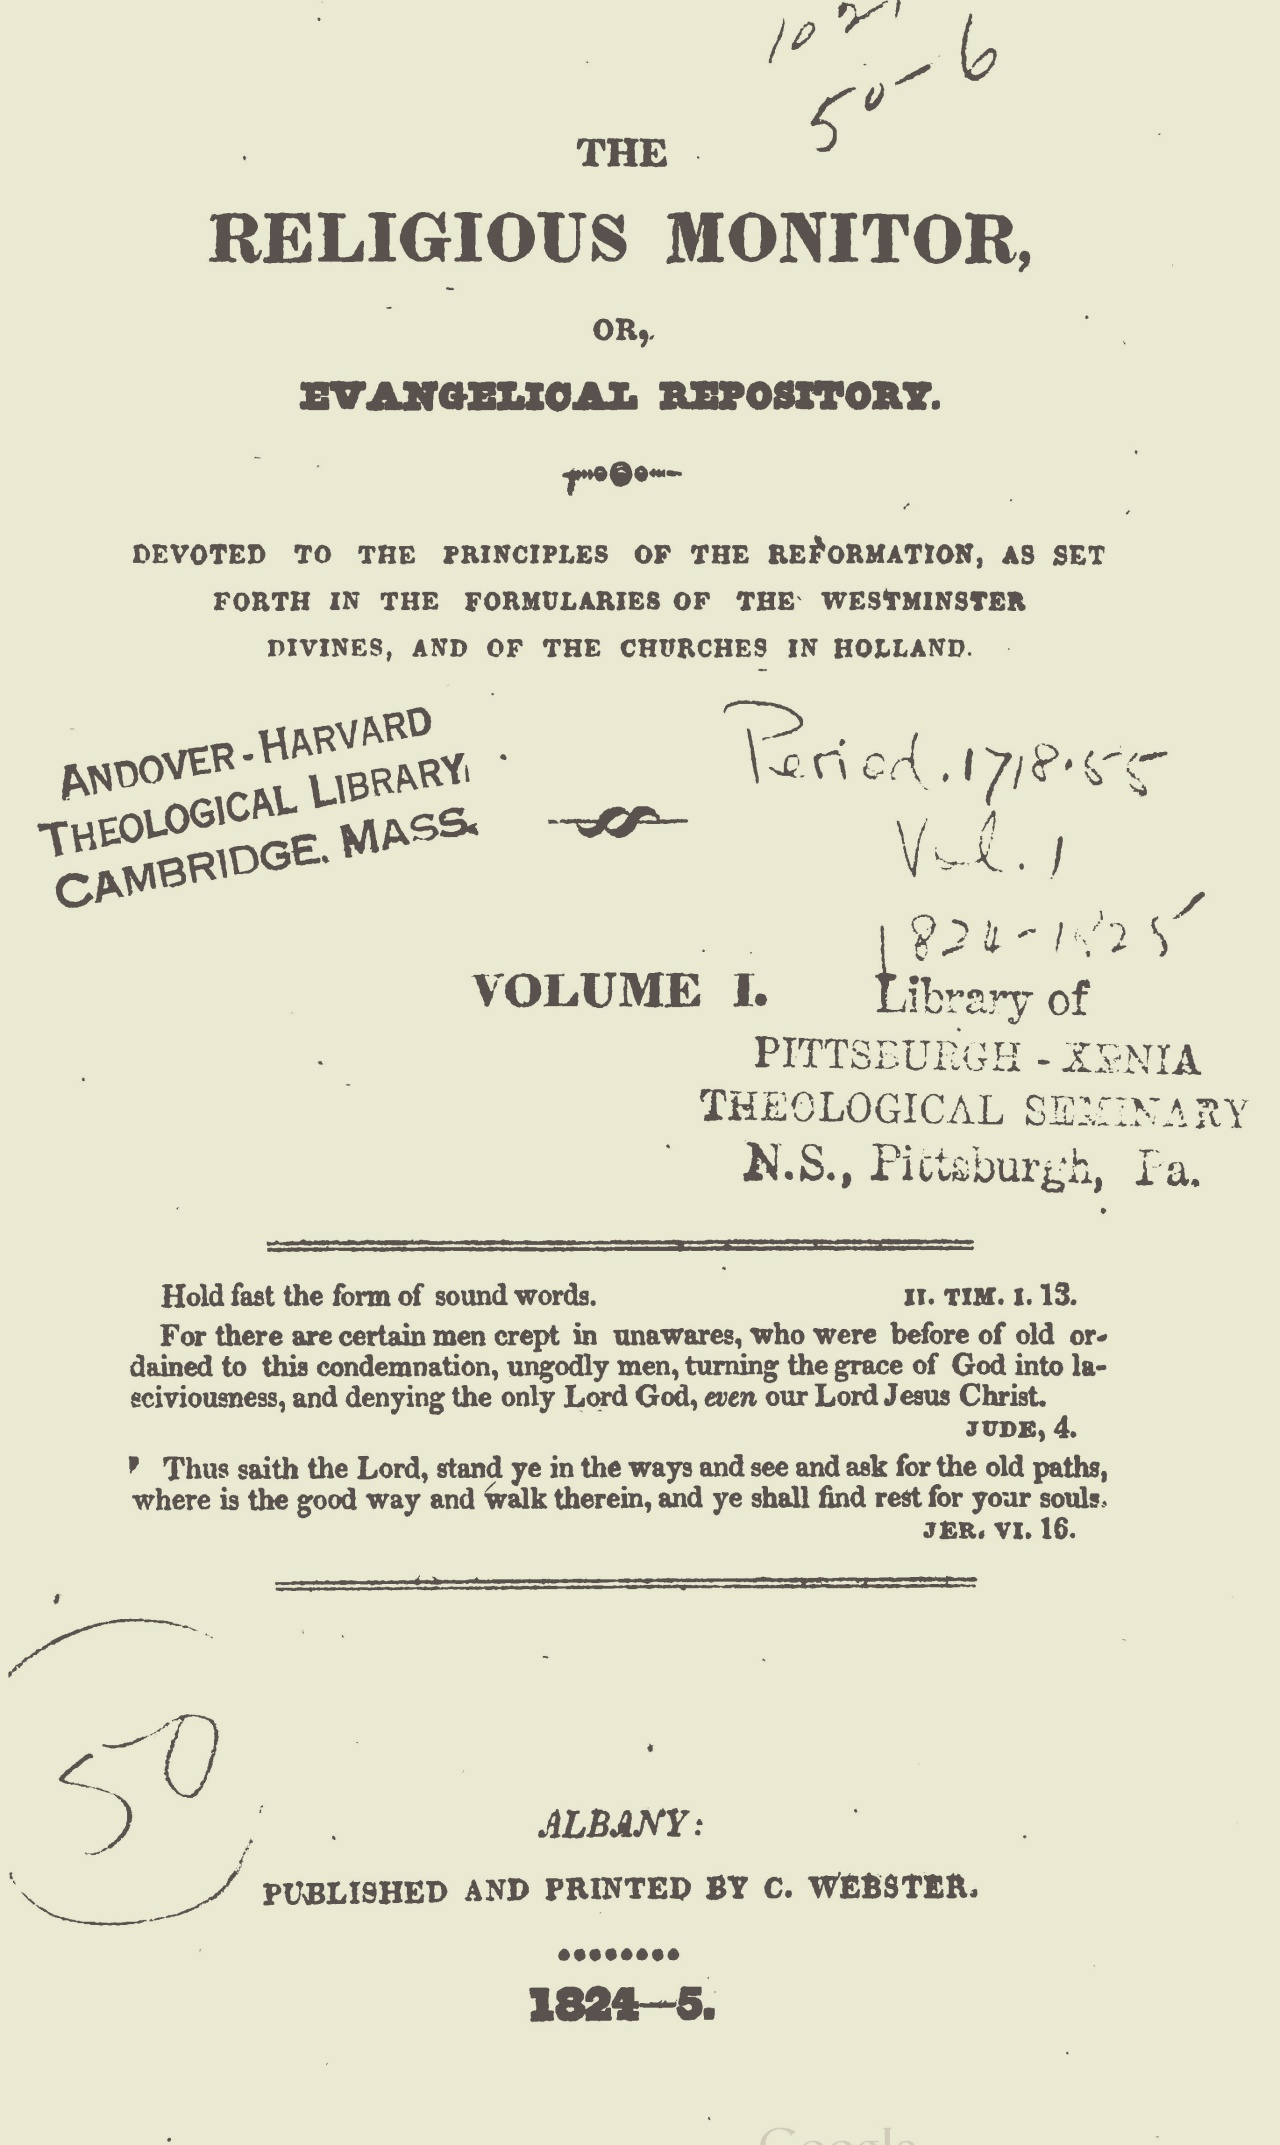 Webster, Chauncey, The Religious Monitor, and Evangelical Repository, Vol. 1 Title Page.jpg